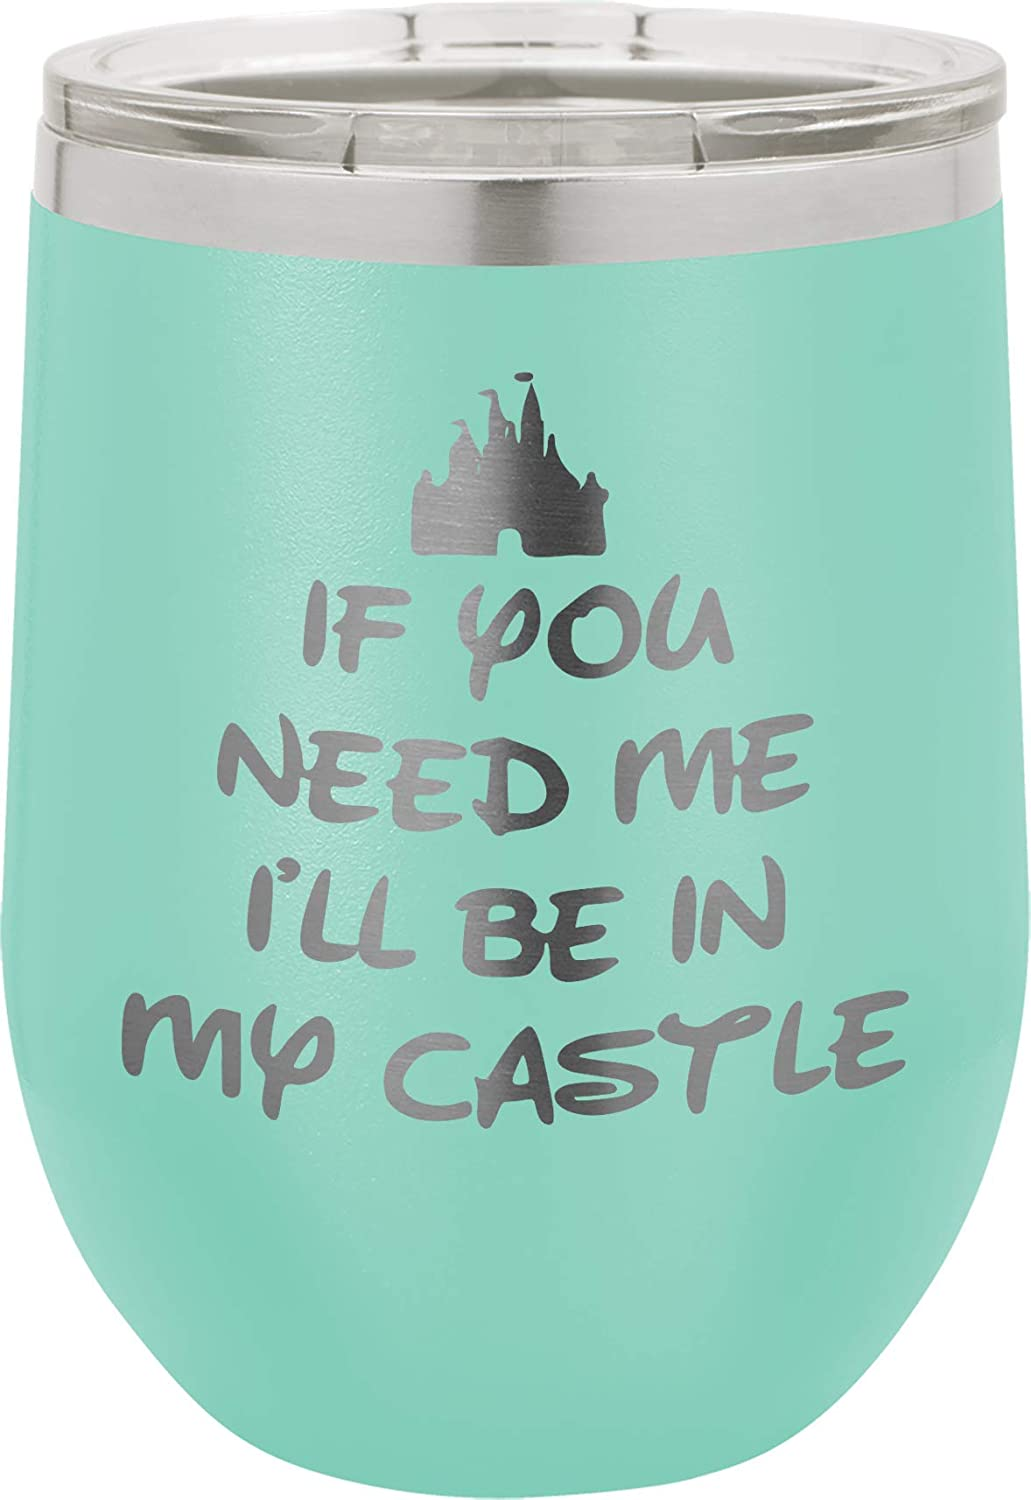 If You Need Me I'll Be - 12oz wine tumbler with lid - 100% Stainless Steel - Insulated Stemless Double Wall Vacuum Tumbler - Funny Sayings - Mom Nana Dad Wife BFF - Best Gift for Mens Woman Teens Teal